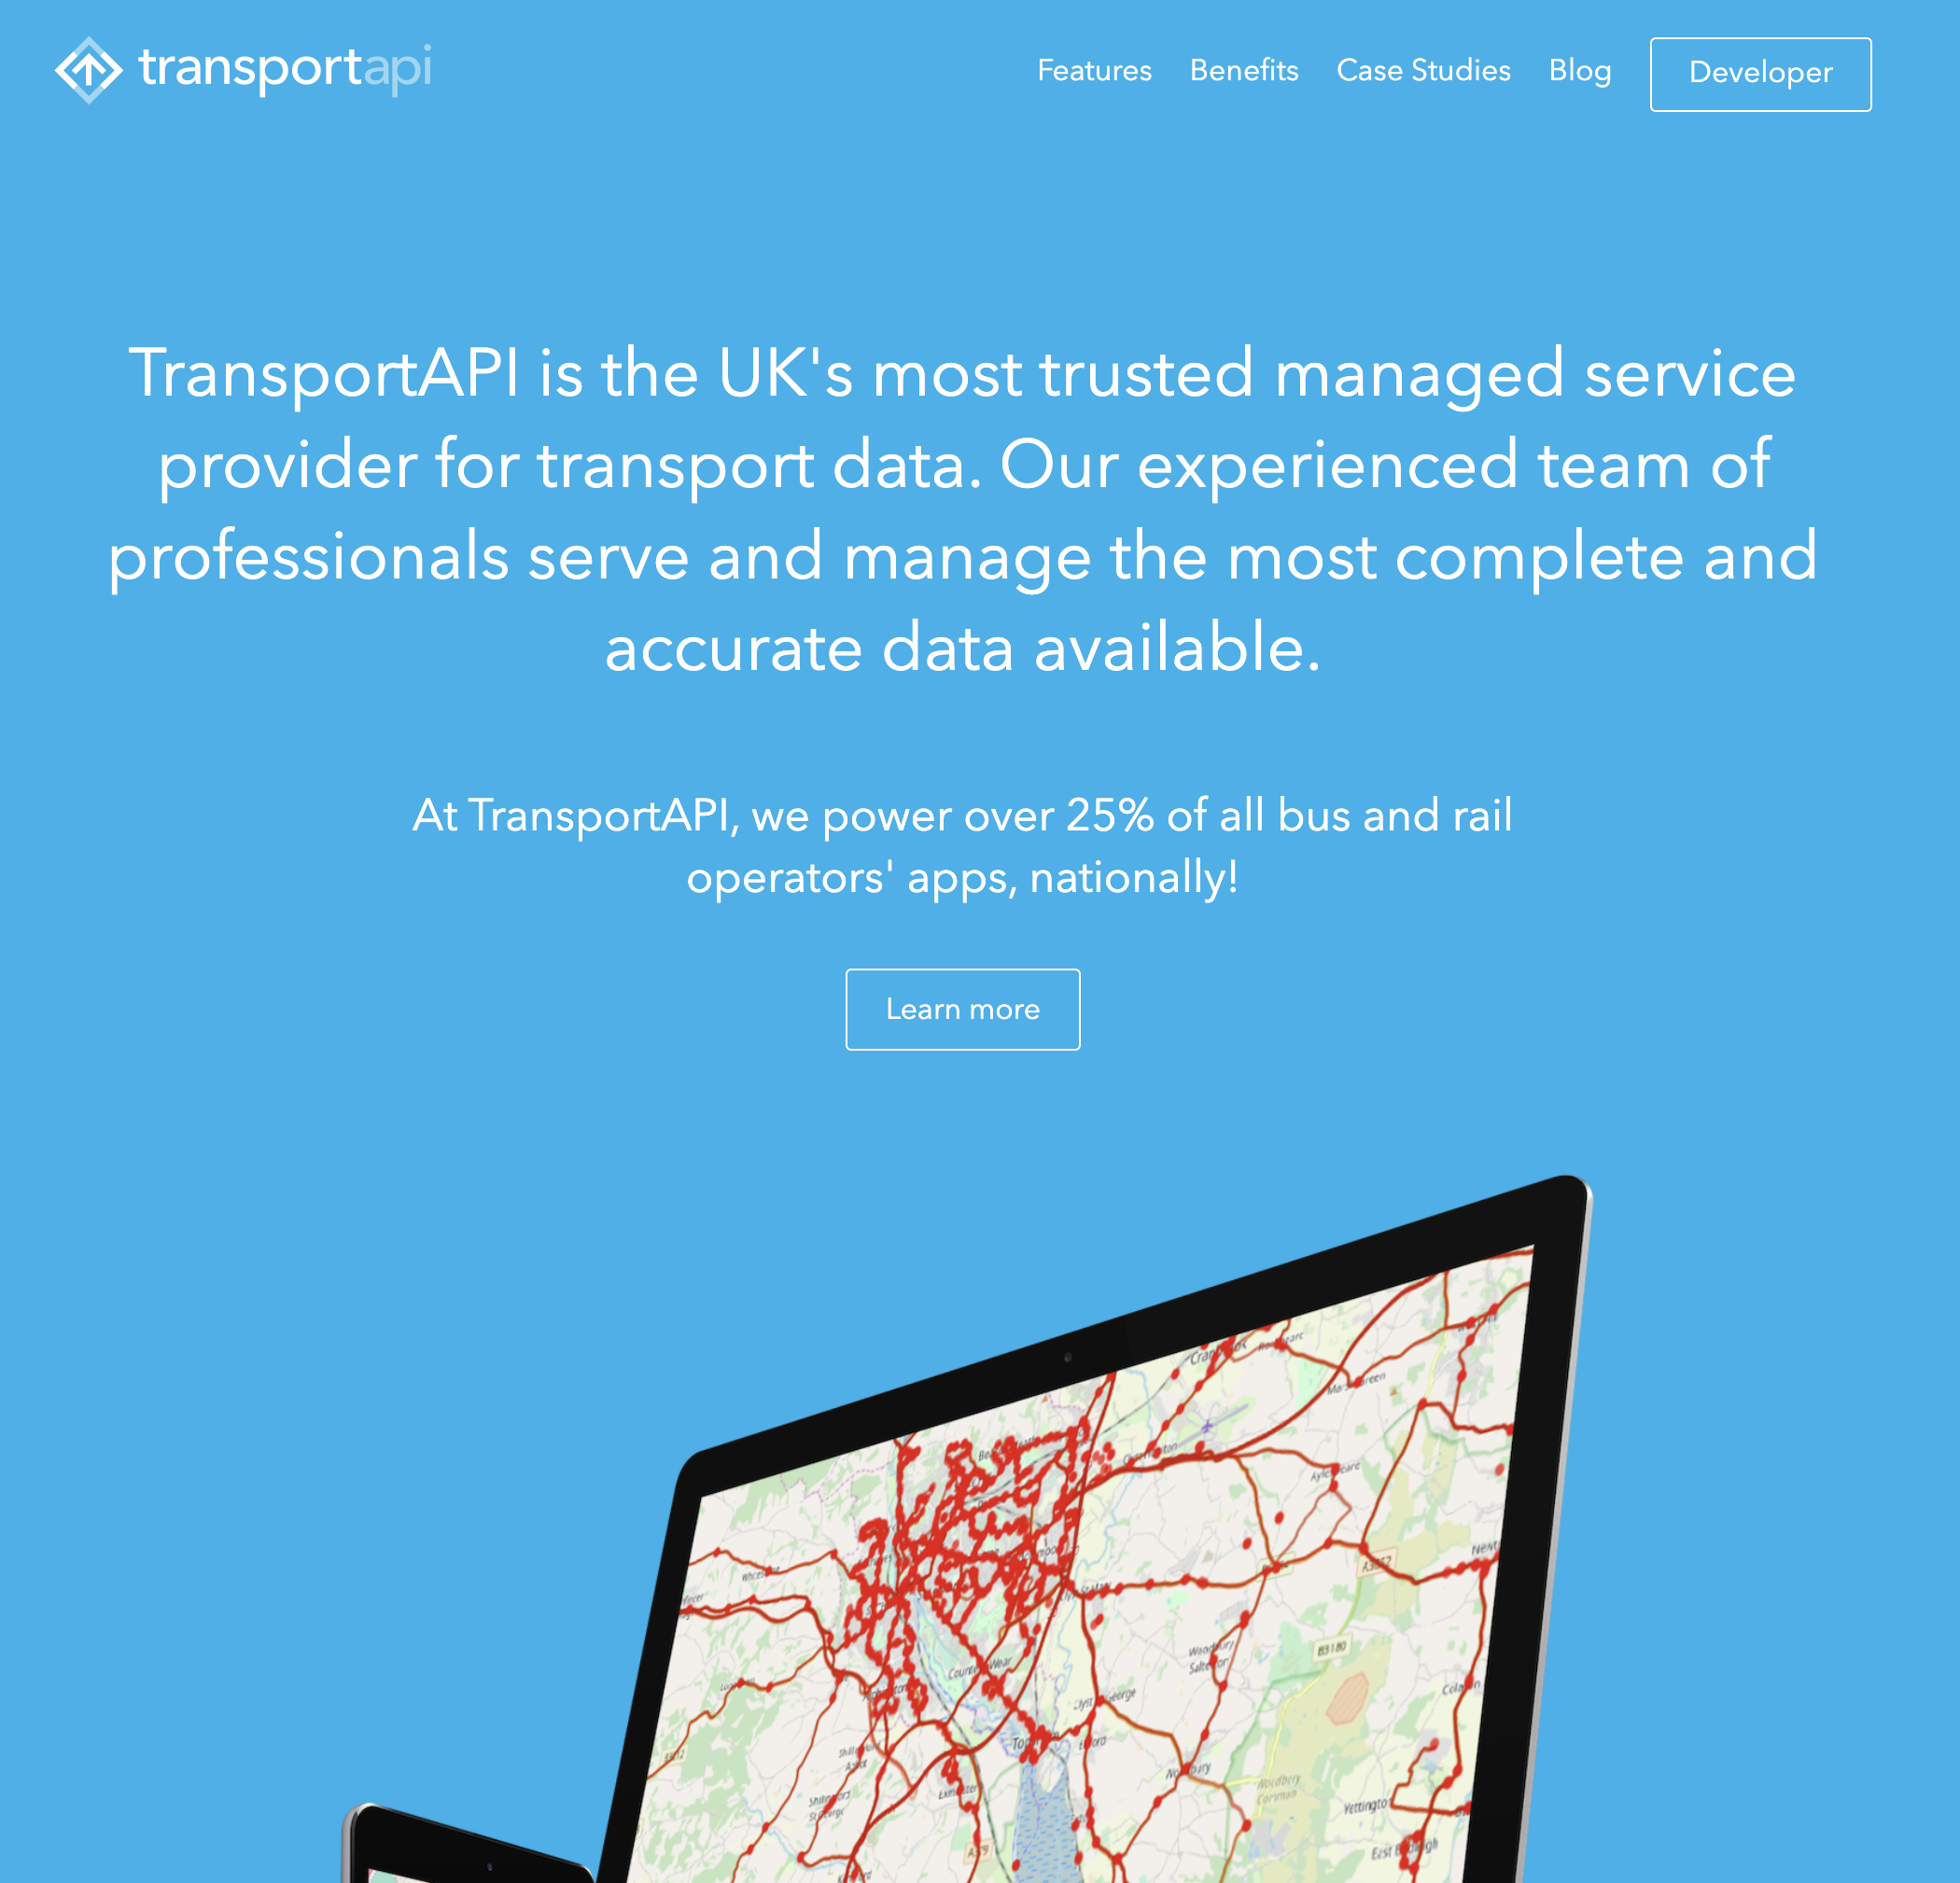 The TransportAPI Website